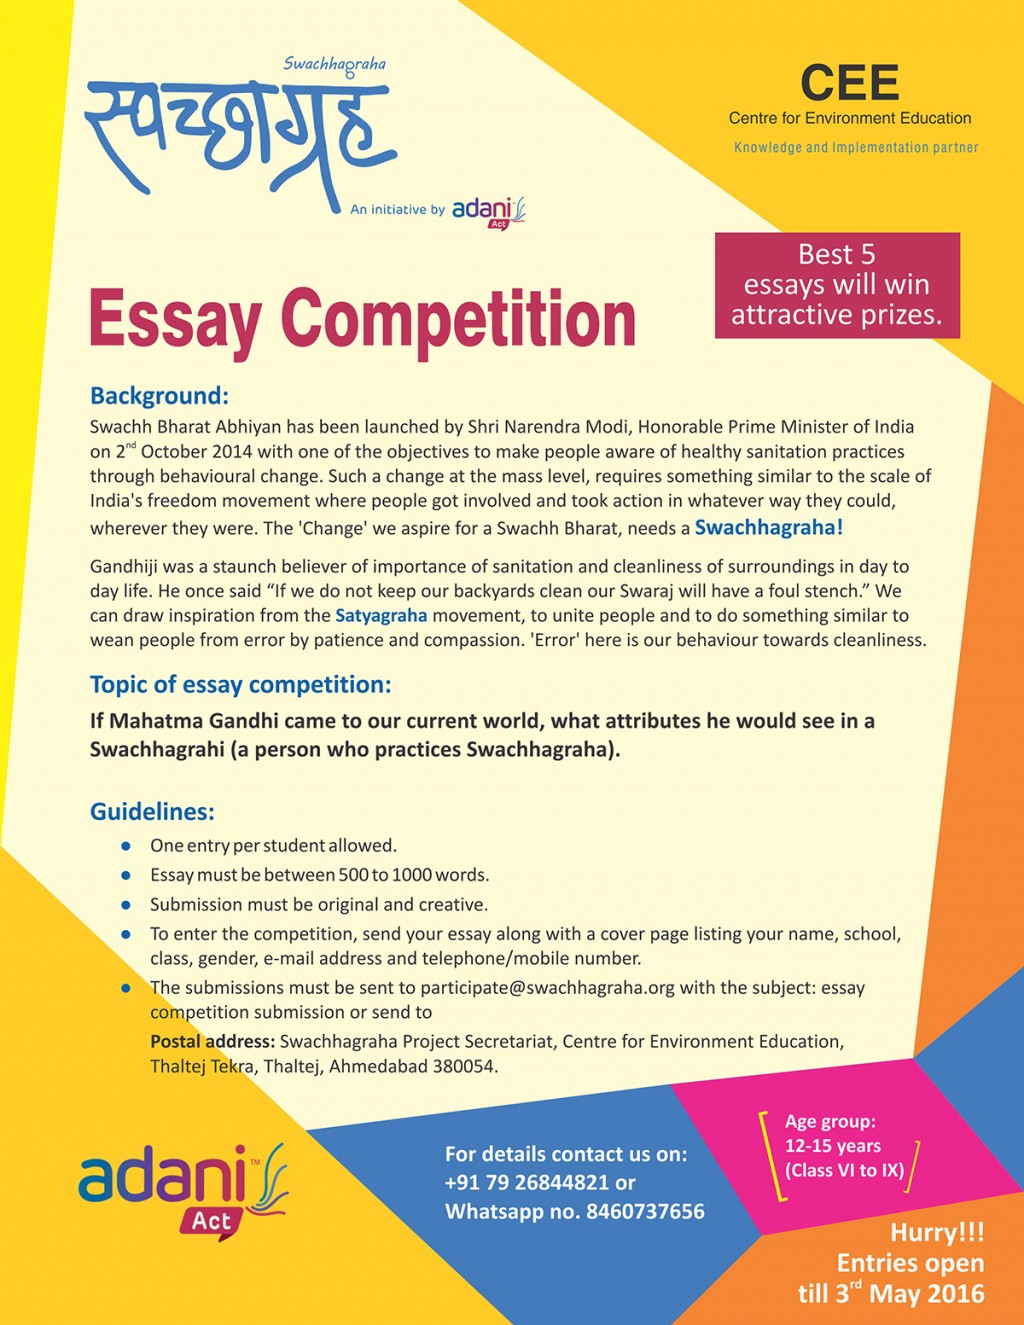 011 20180129171946essay20competition Essay About Cleanliness In School Phenomenal Campaign On Premises Toilet And Its Surrounding Large